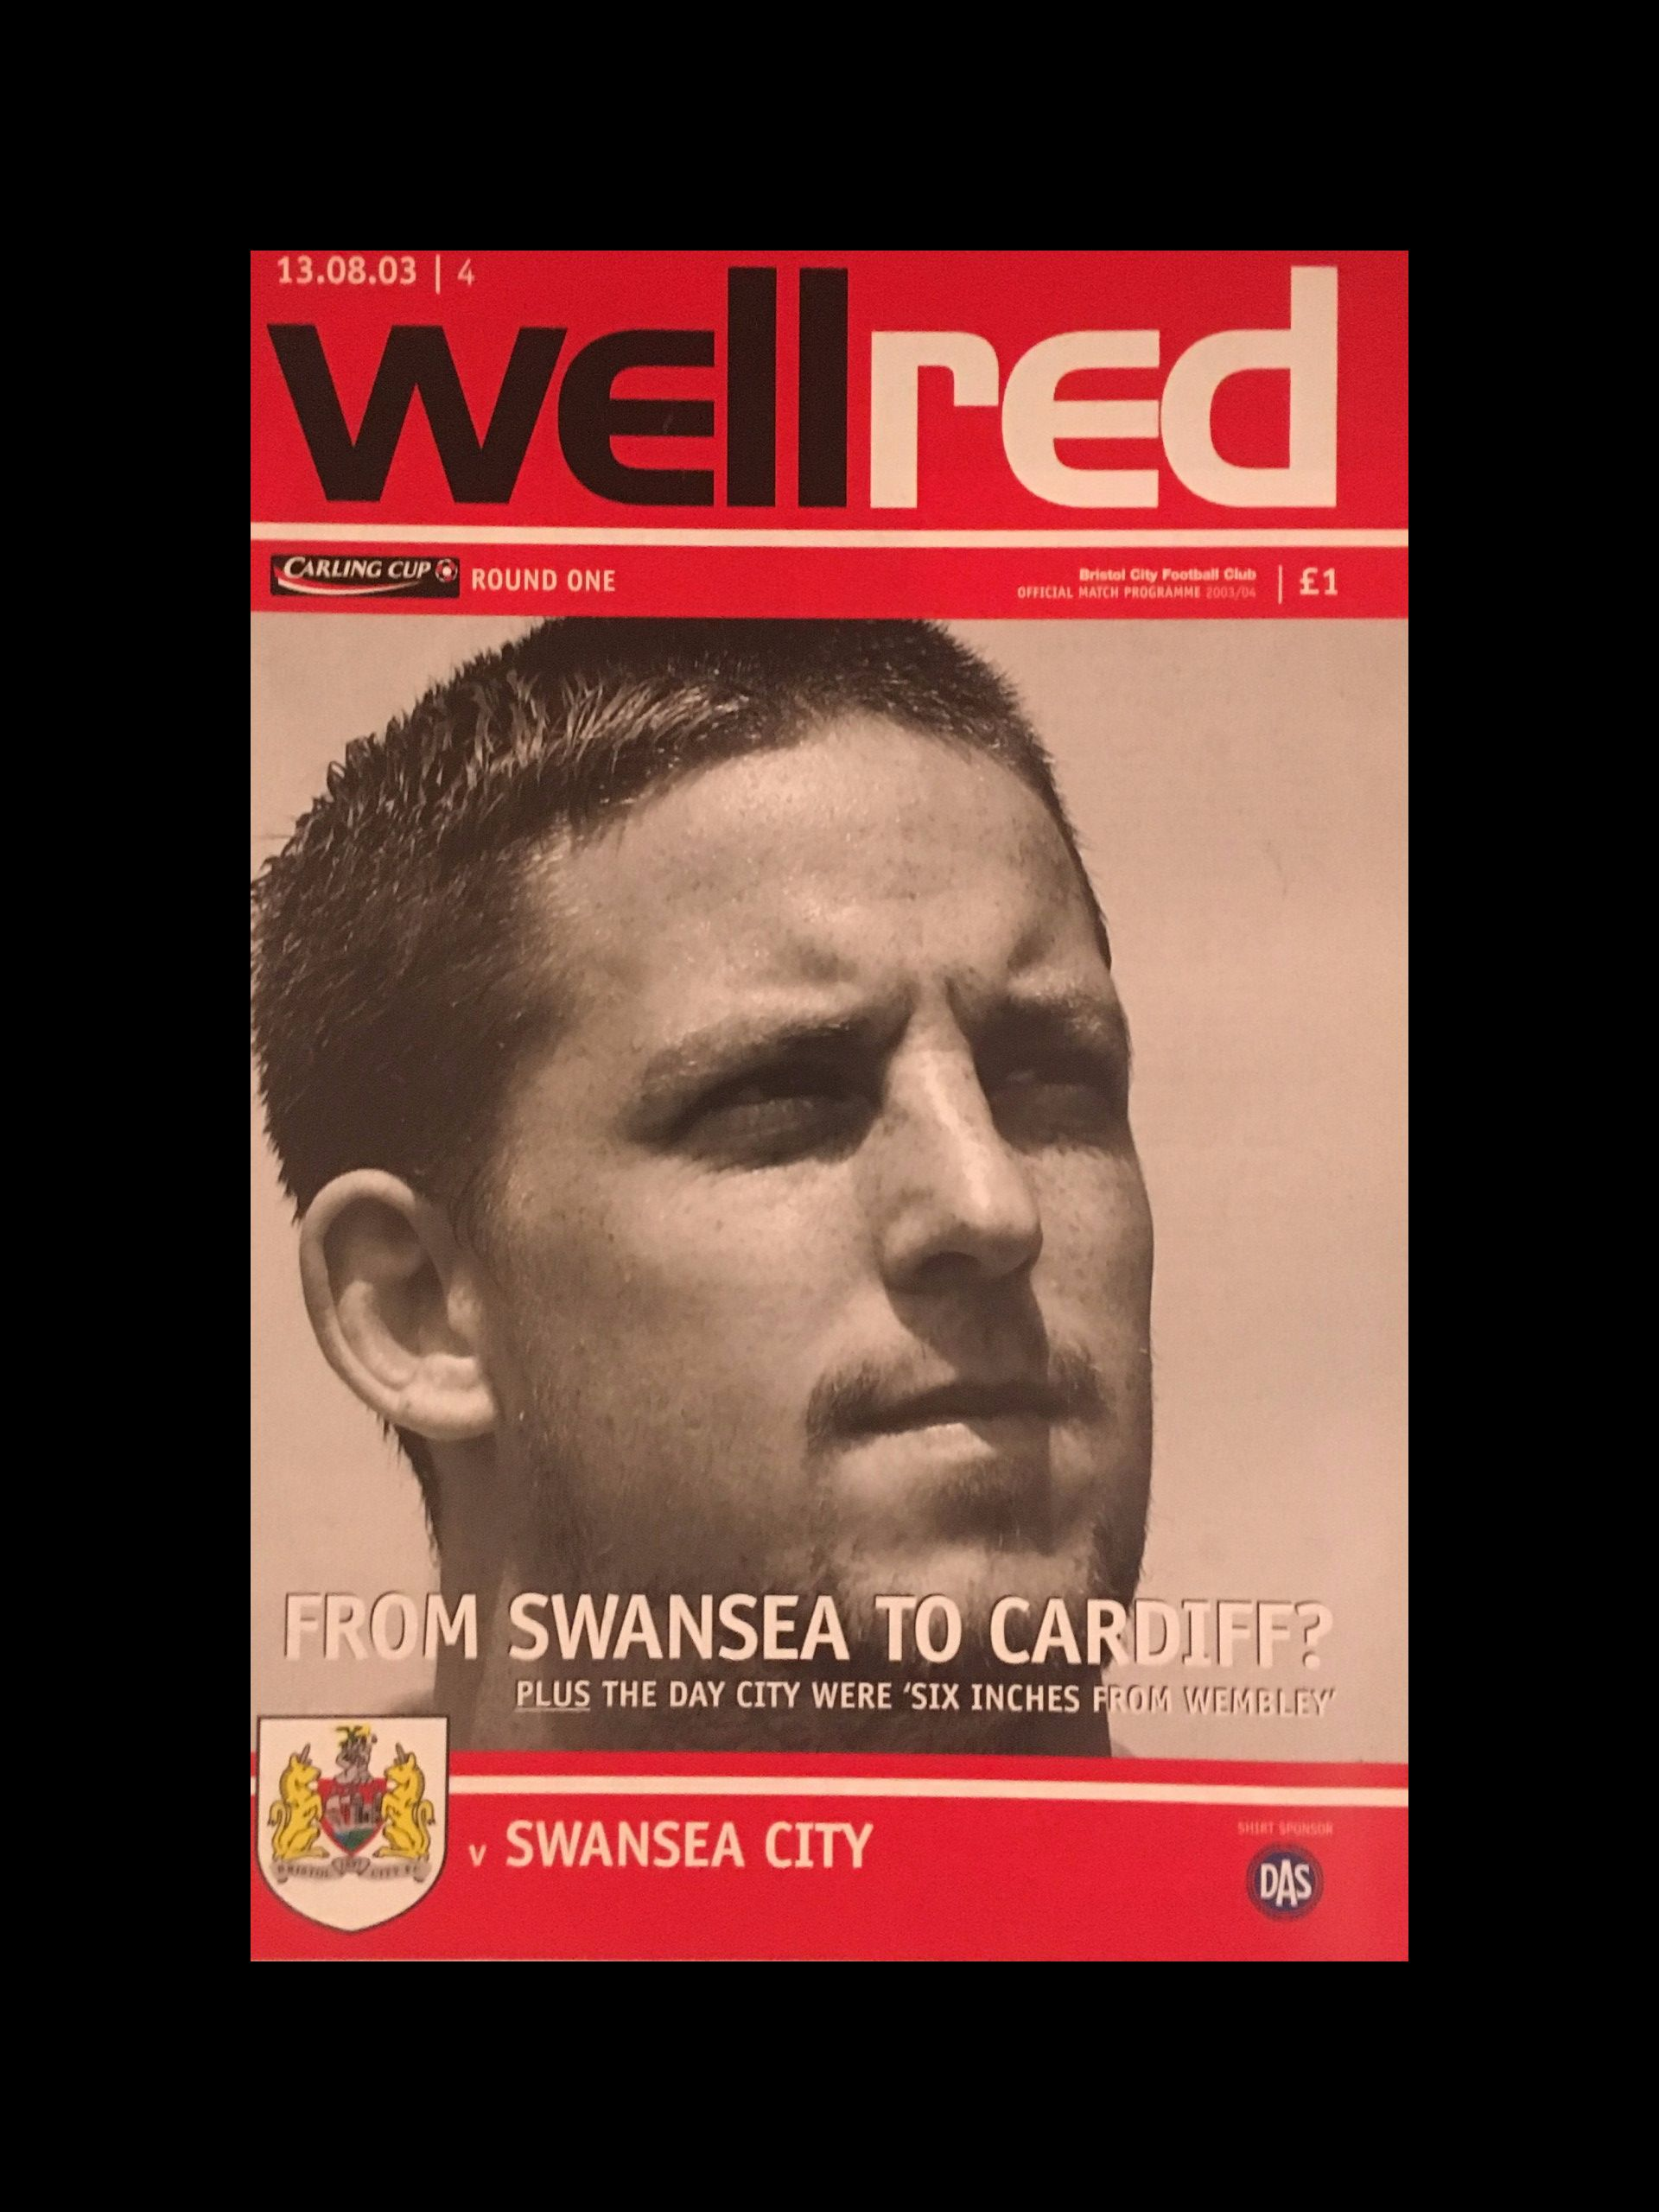 Bristol City v Swansea City 13-08-2003 Programme